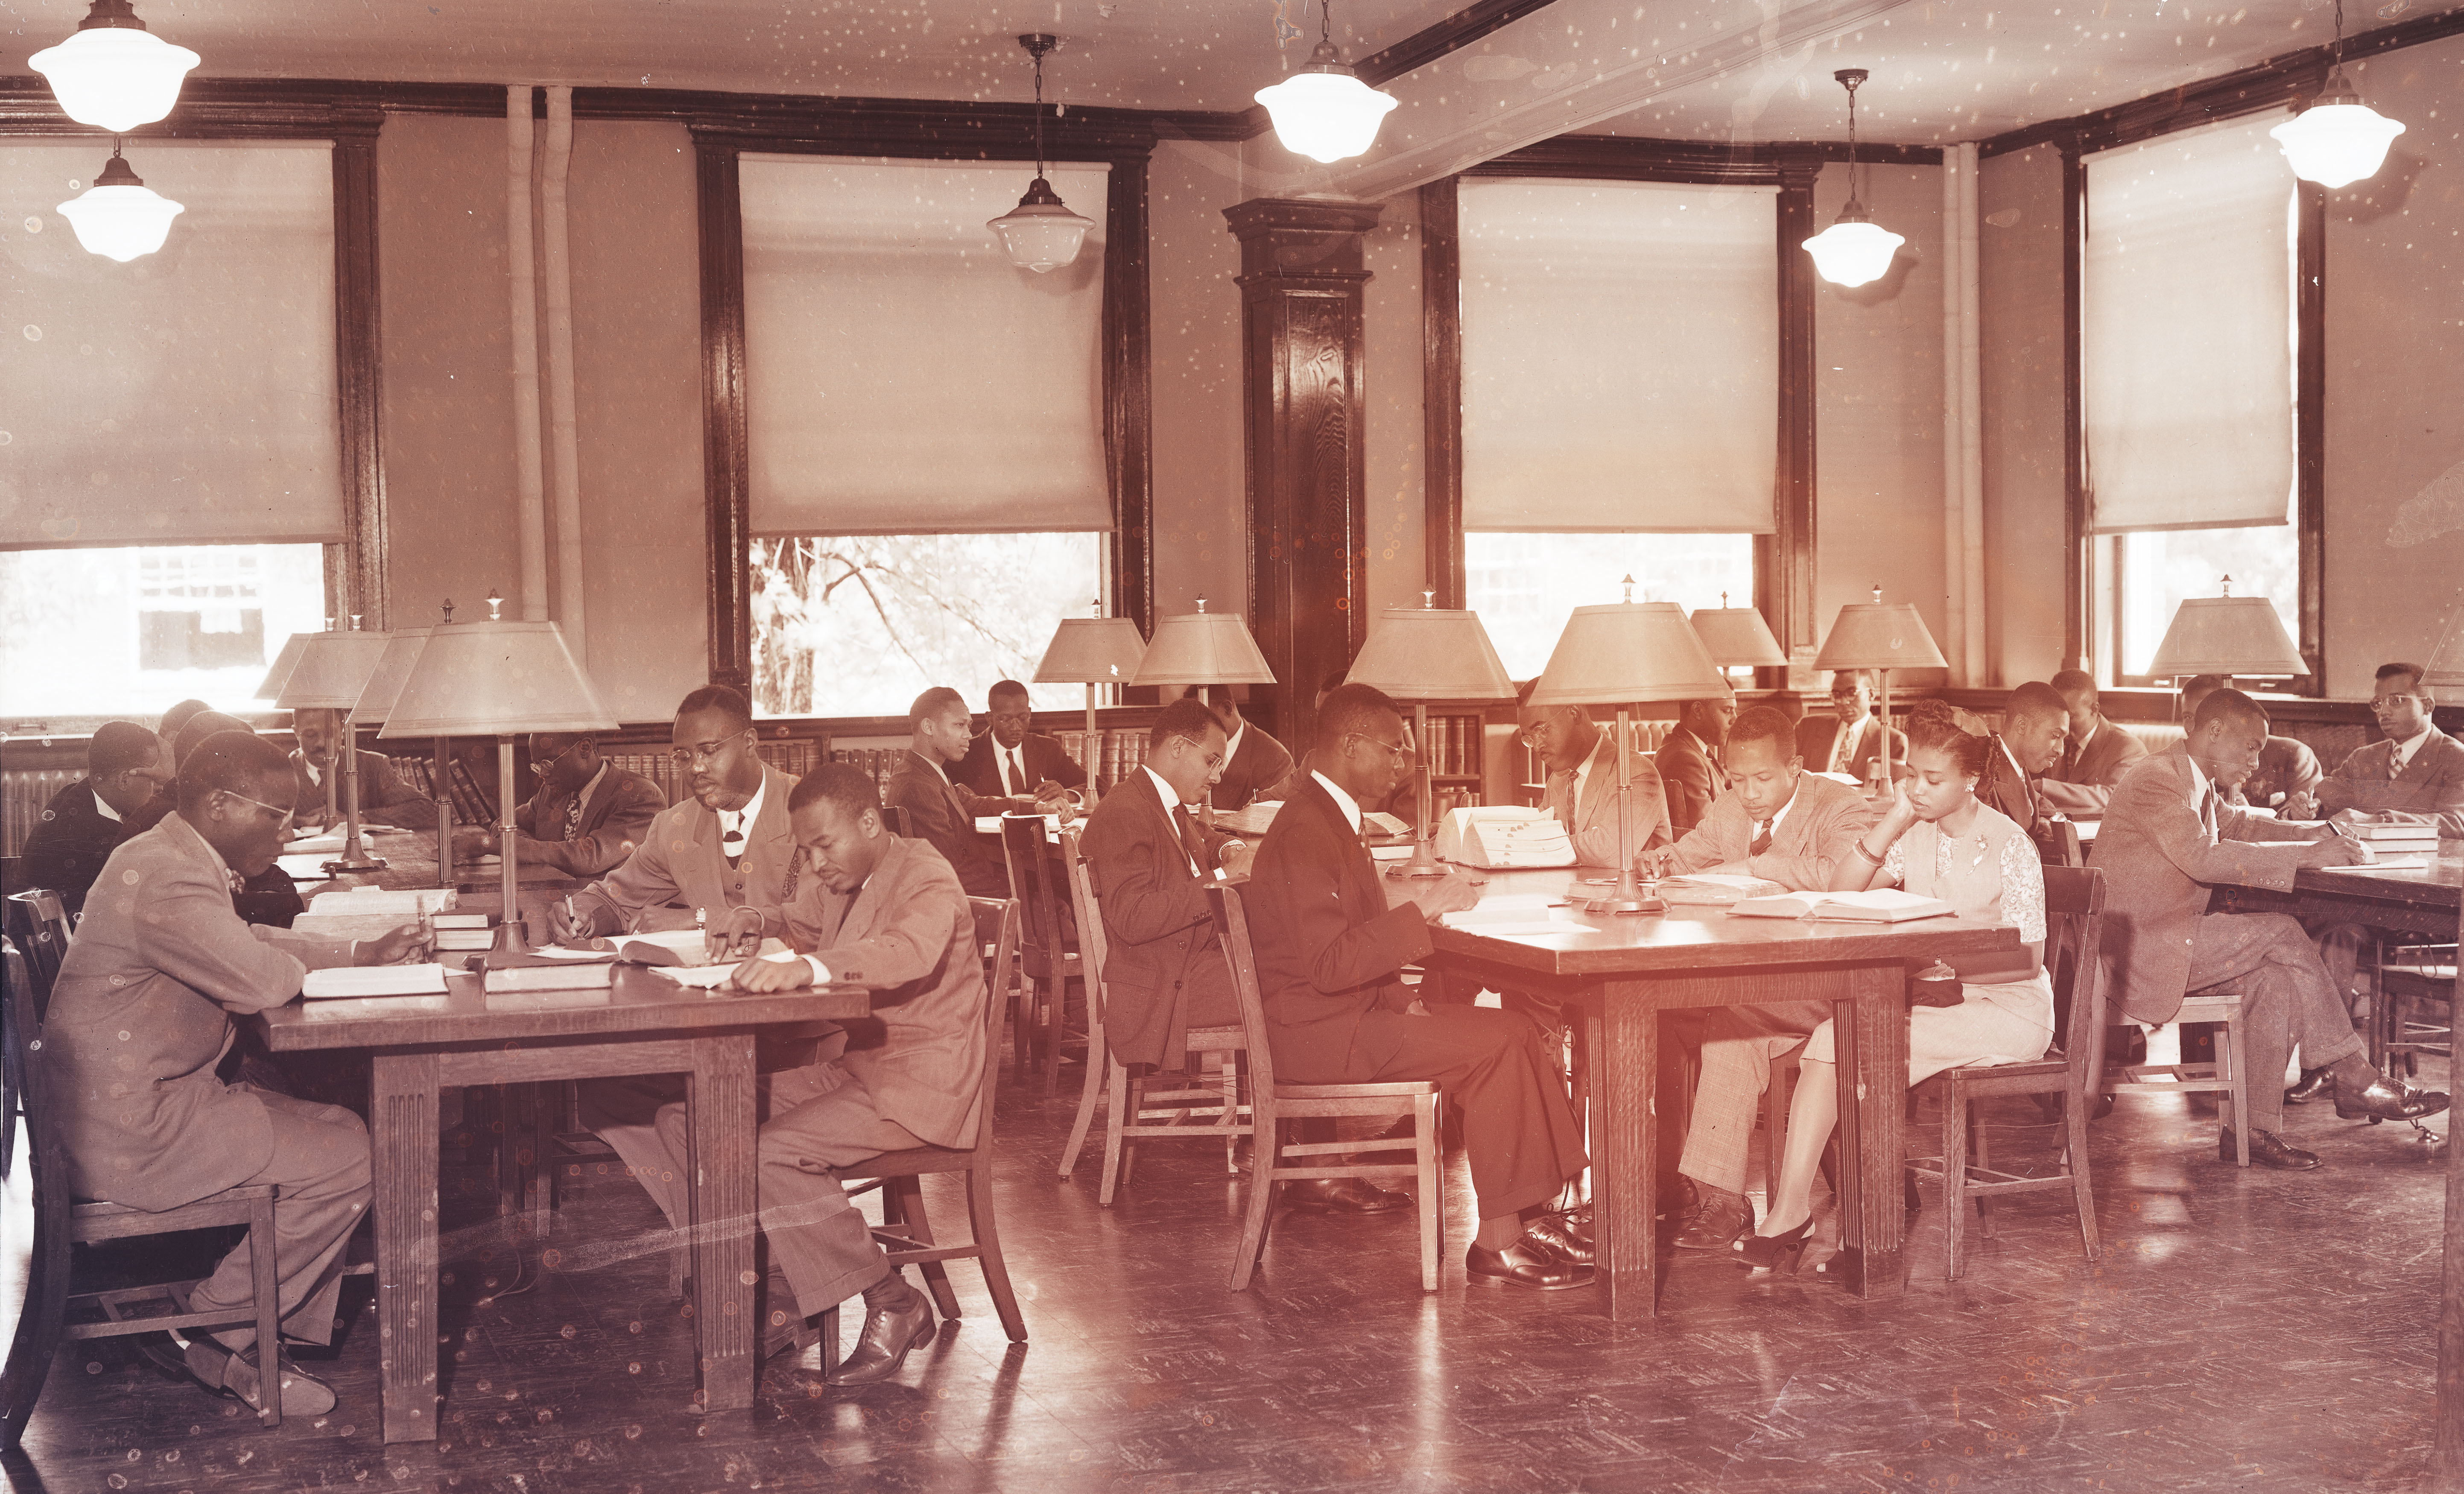 Photograph of young people at work at library desks